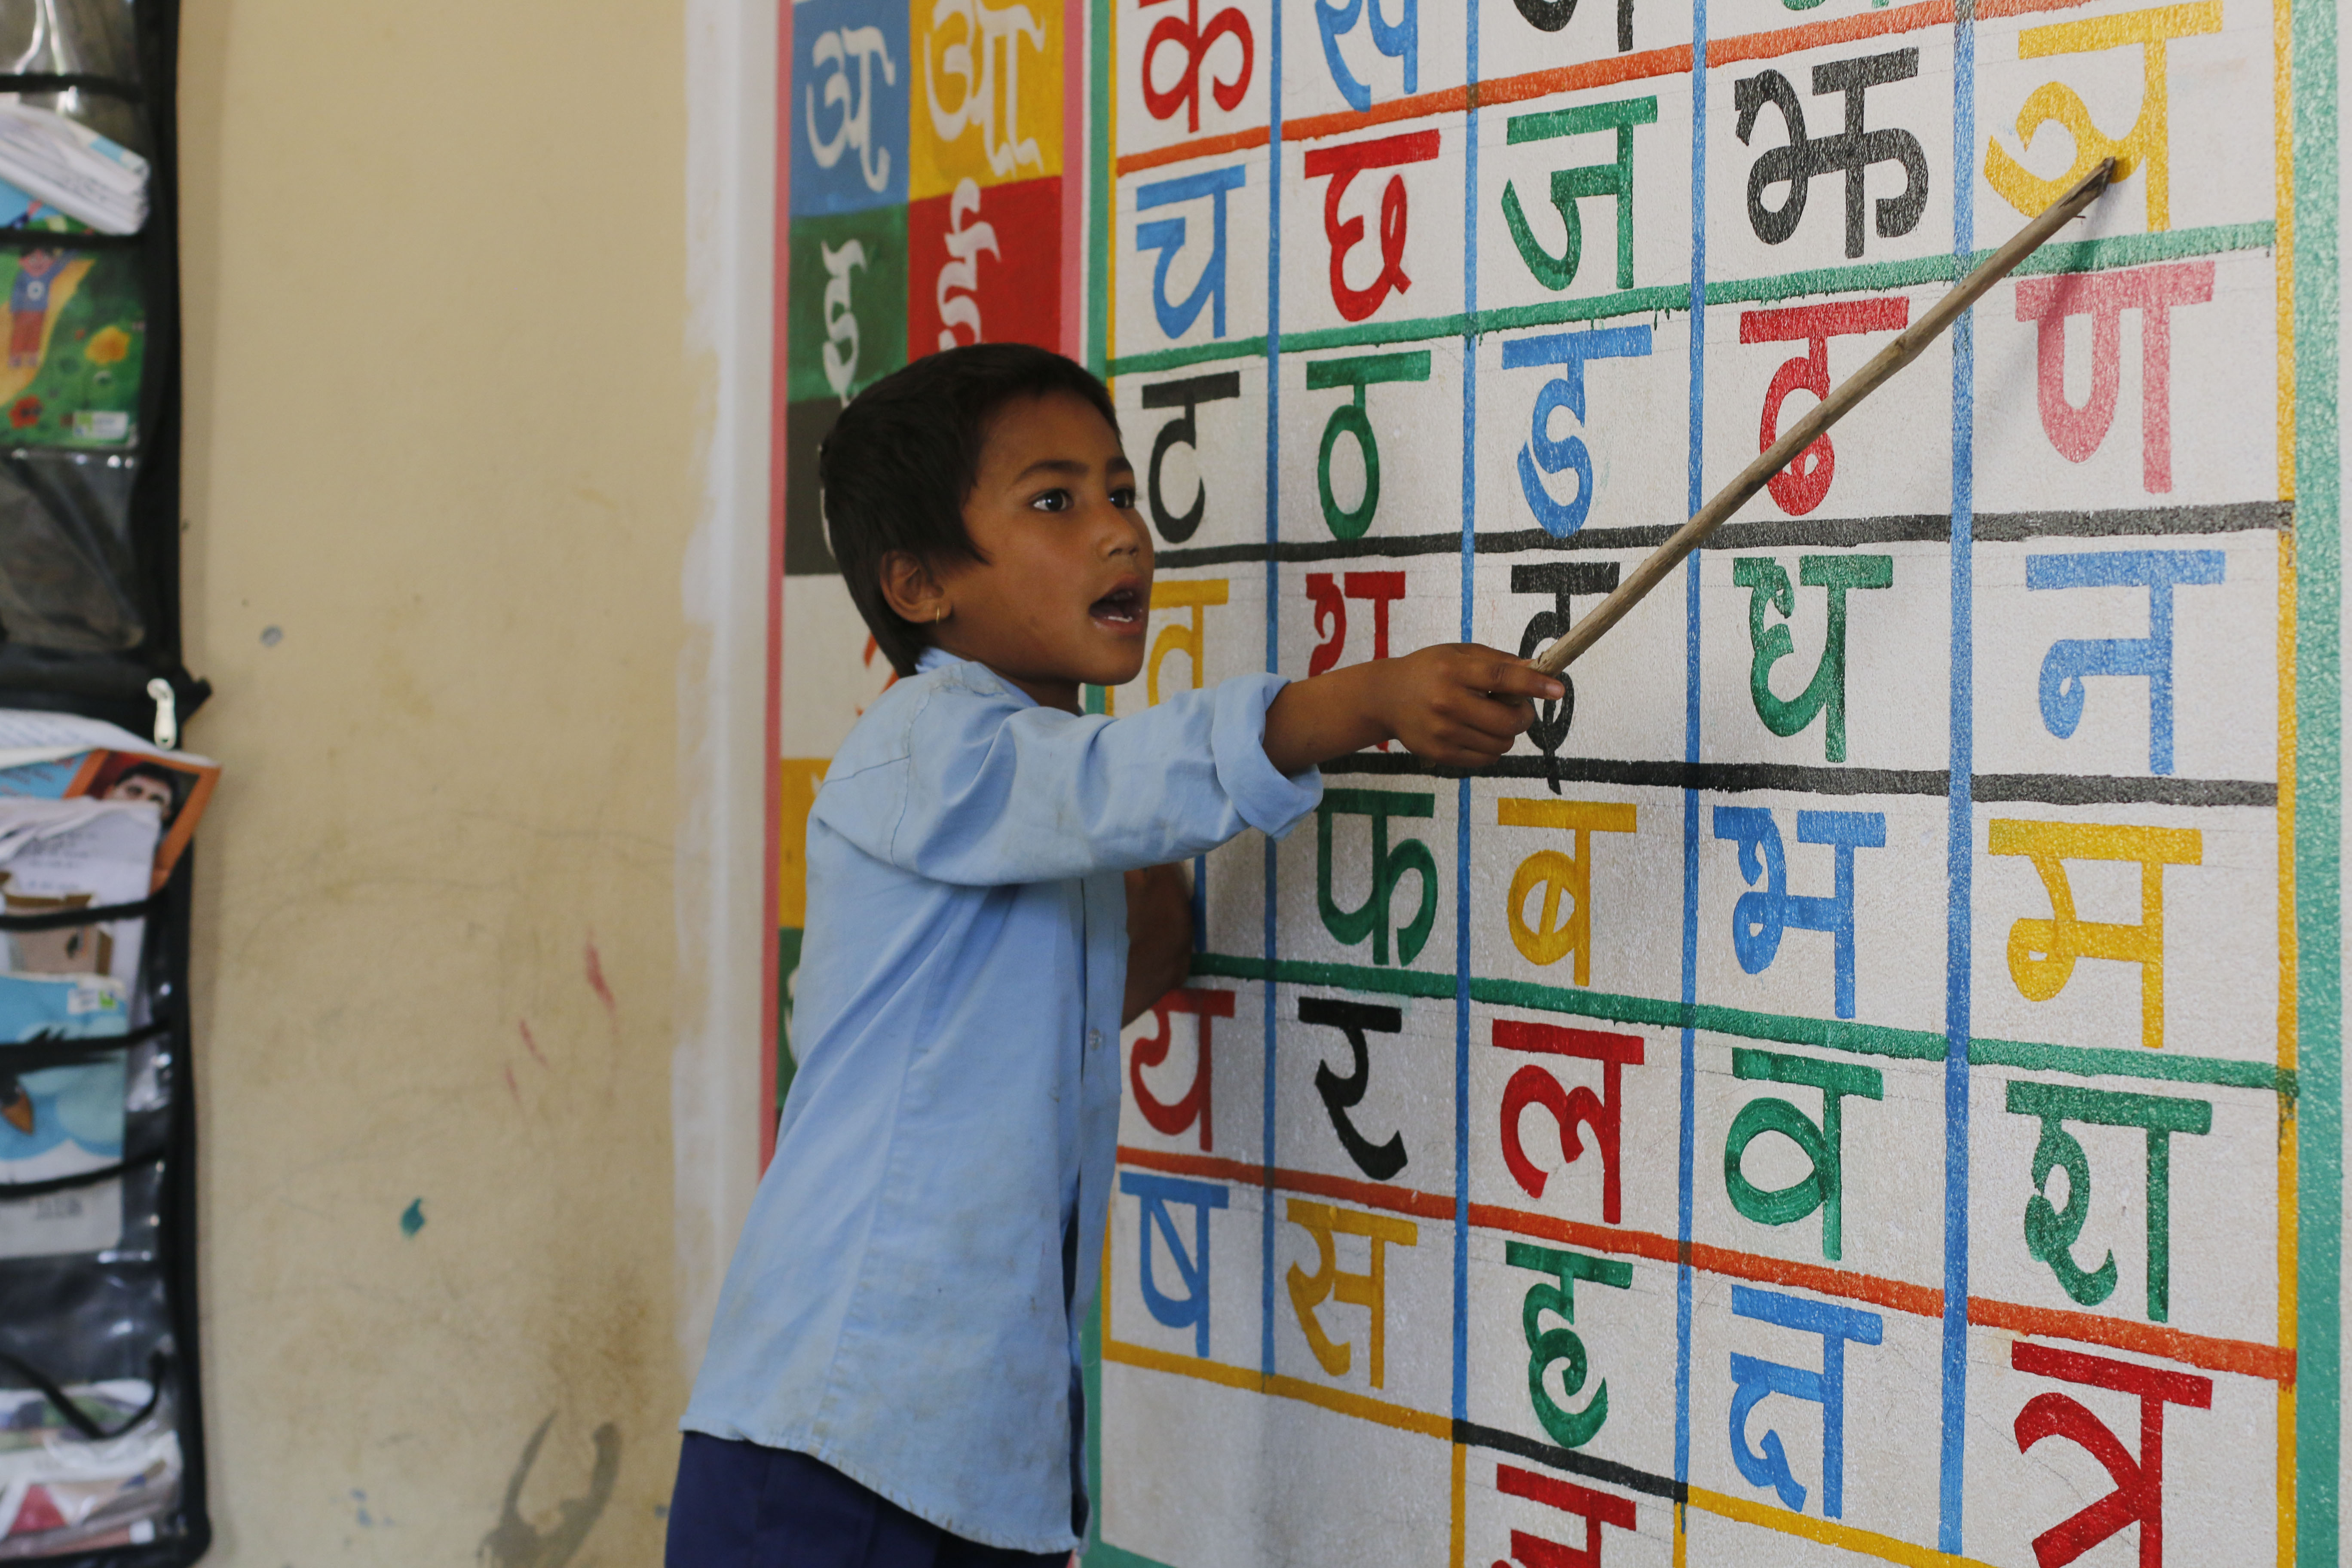 Hom Bahadur, a first grader, enthusiastically leads his friends in a class activity.